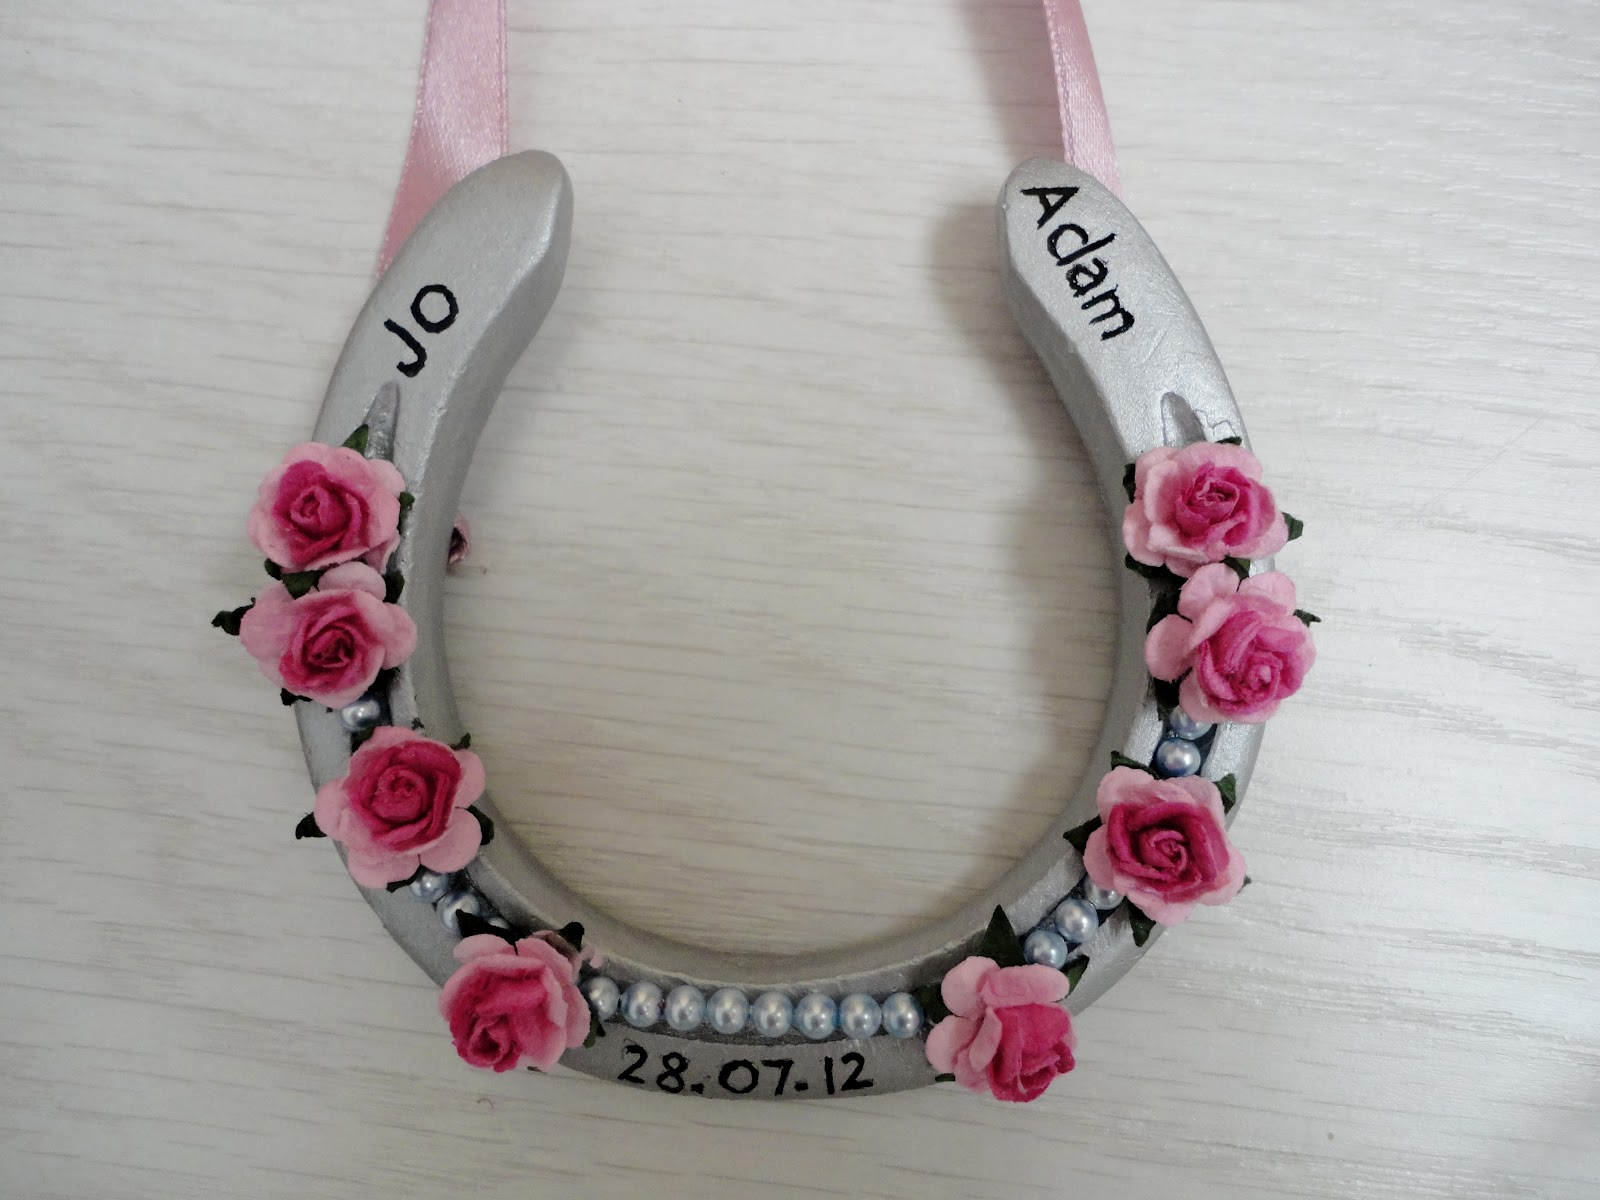 The horse talker wedding horseshoe diy for How to decorate horseshoes